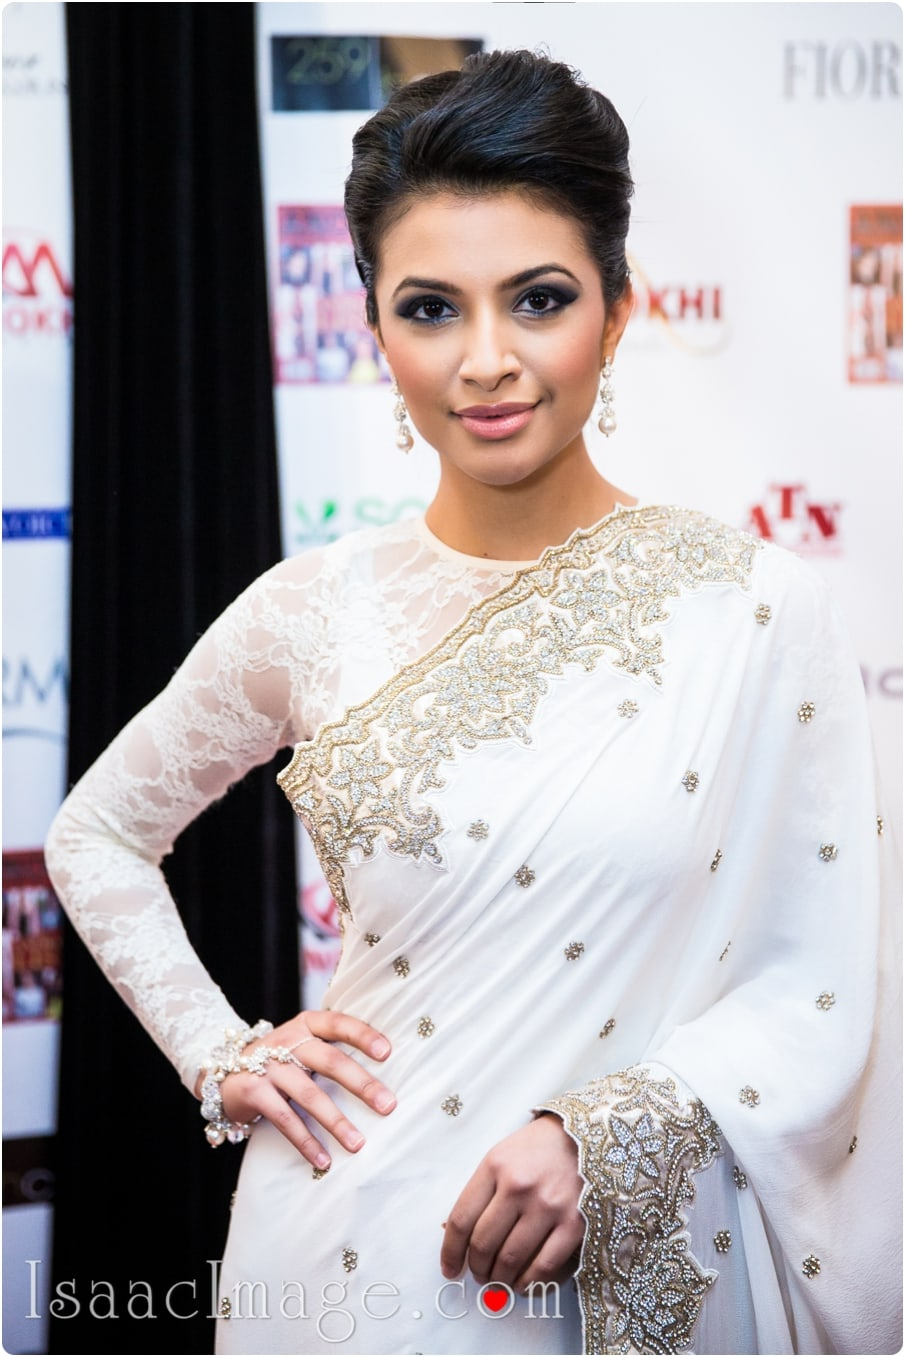 0123-Edit_ANOKHI media 11th Anniversary Event.jpg